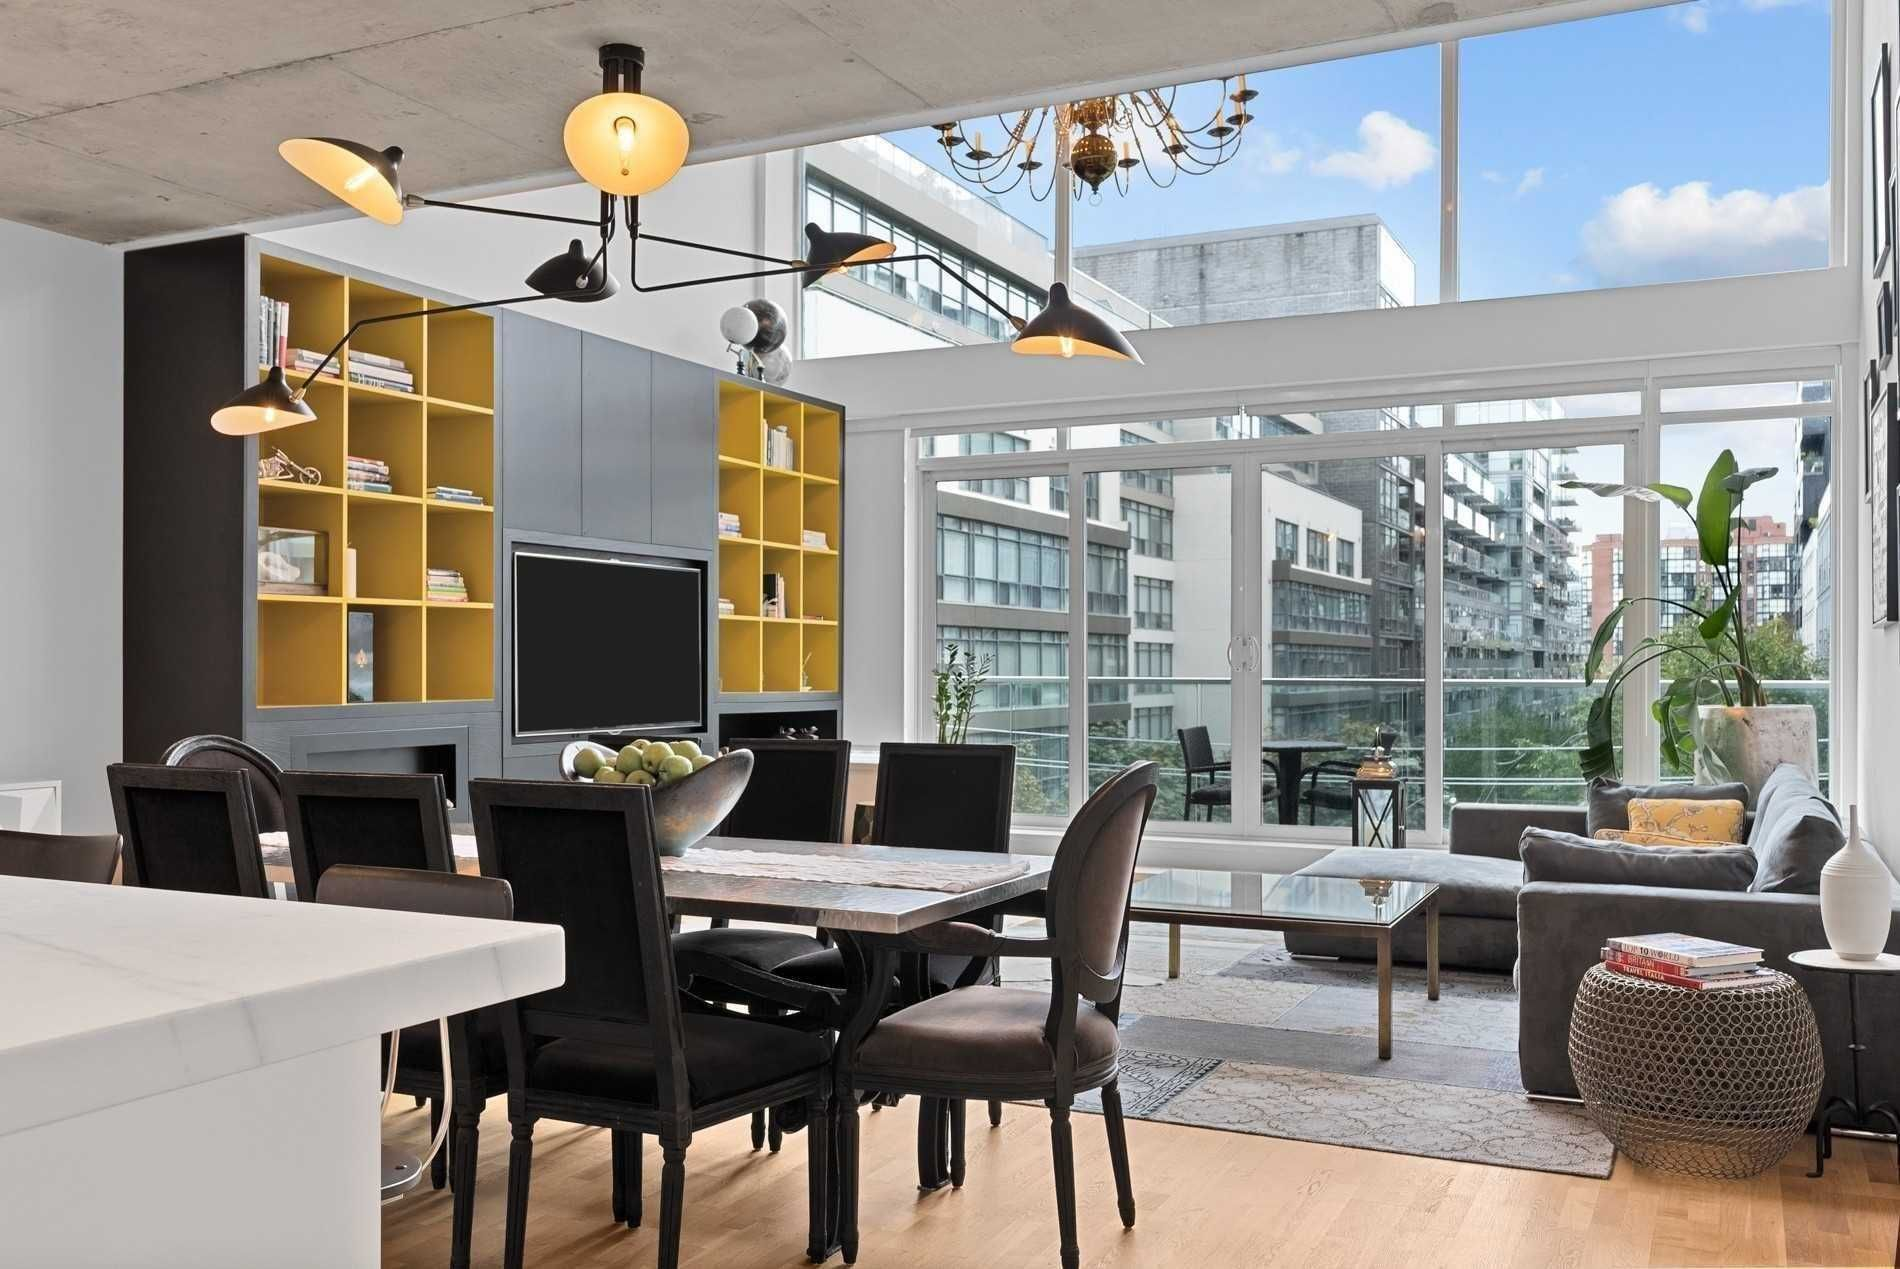 75 Portland St, unit 504 for rent in King West - image #2